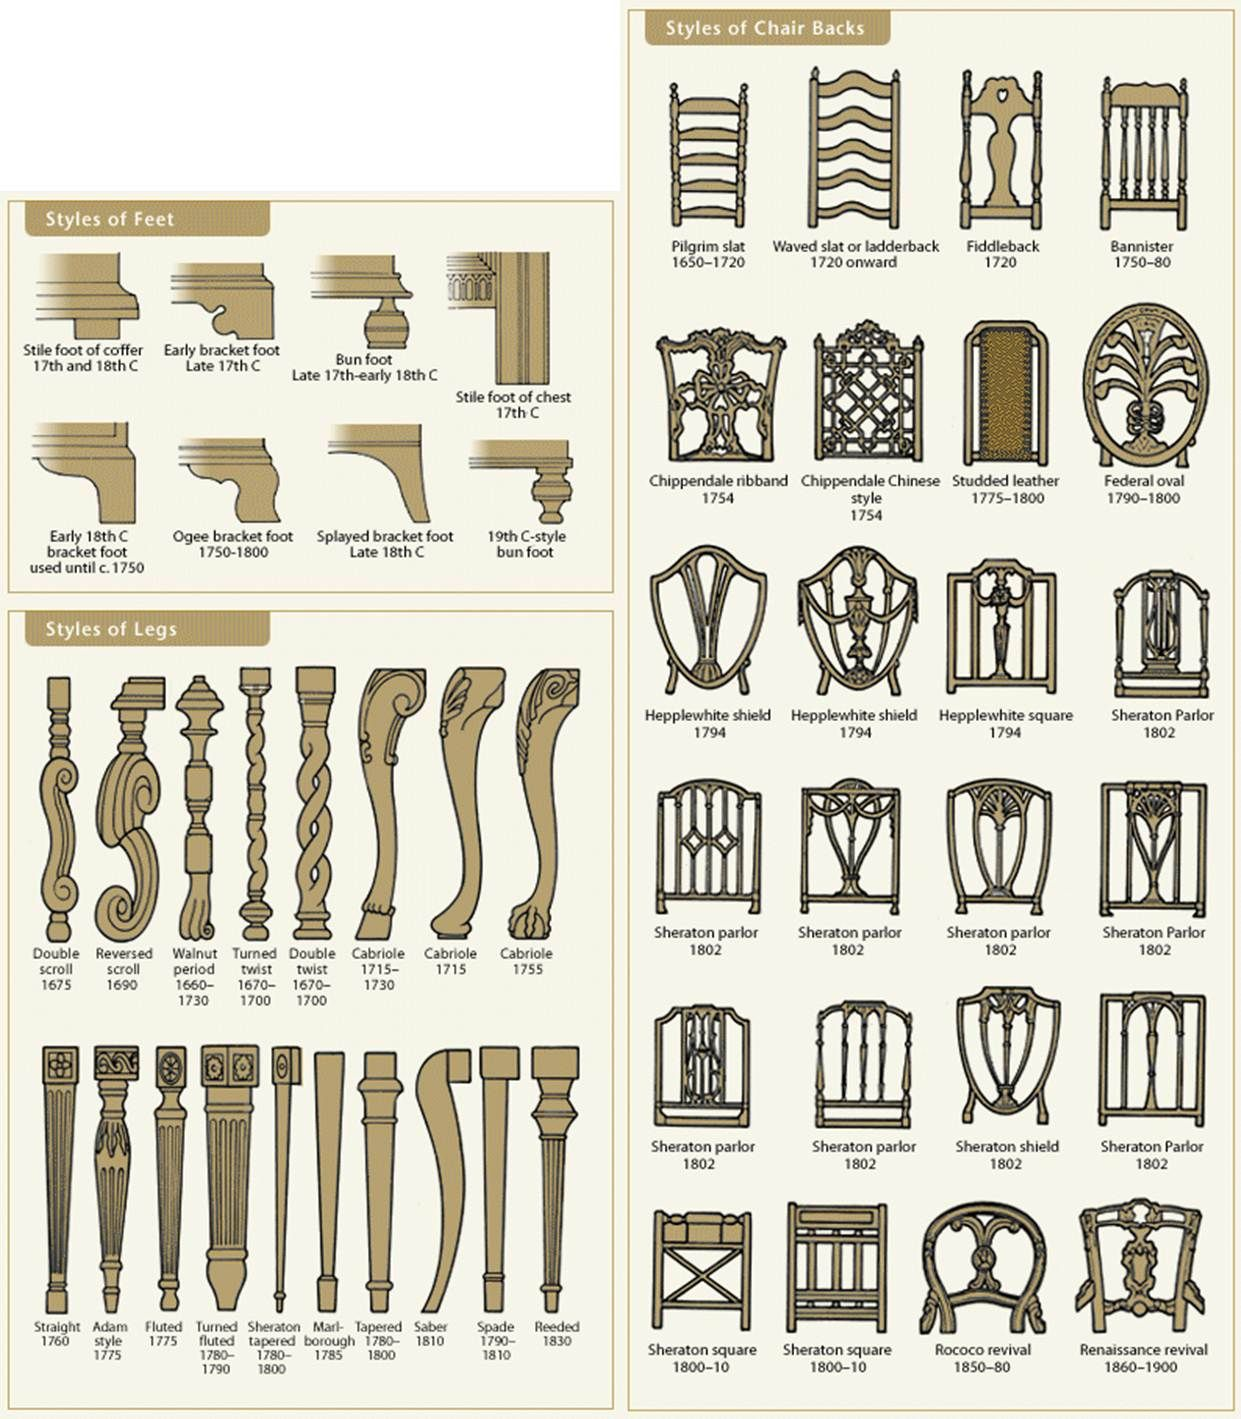 Superieur Styles Of Furniture Design. Furniture Styles By Chicago Appraisers  Association Via Little Victorian Of Design